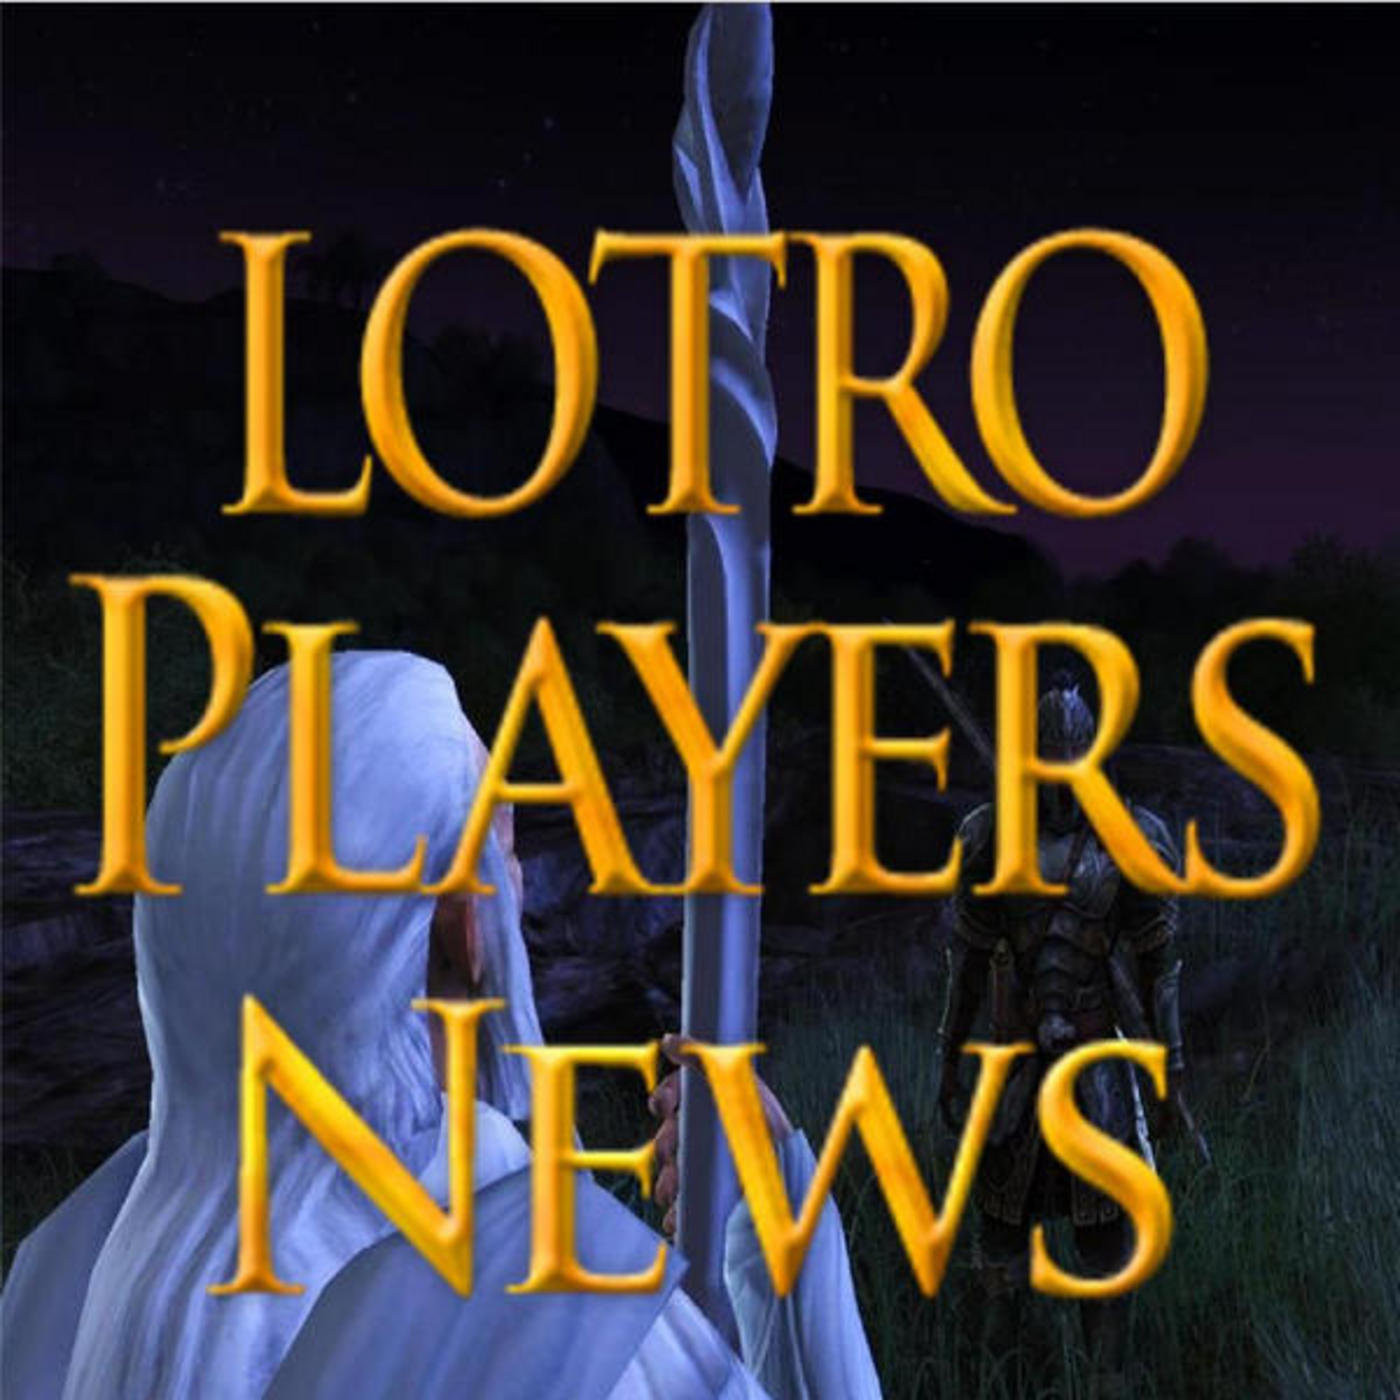 LOTRO Players News Episode 379: Update 27 Review